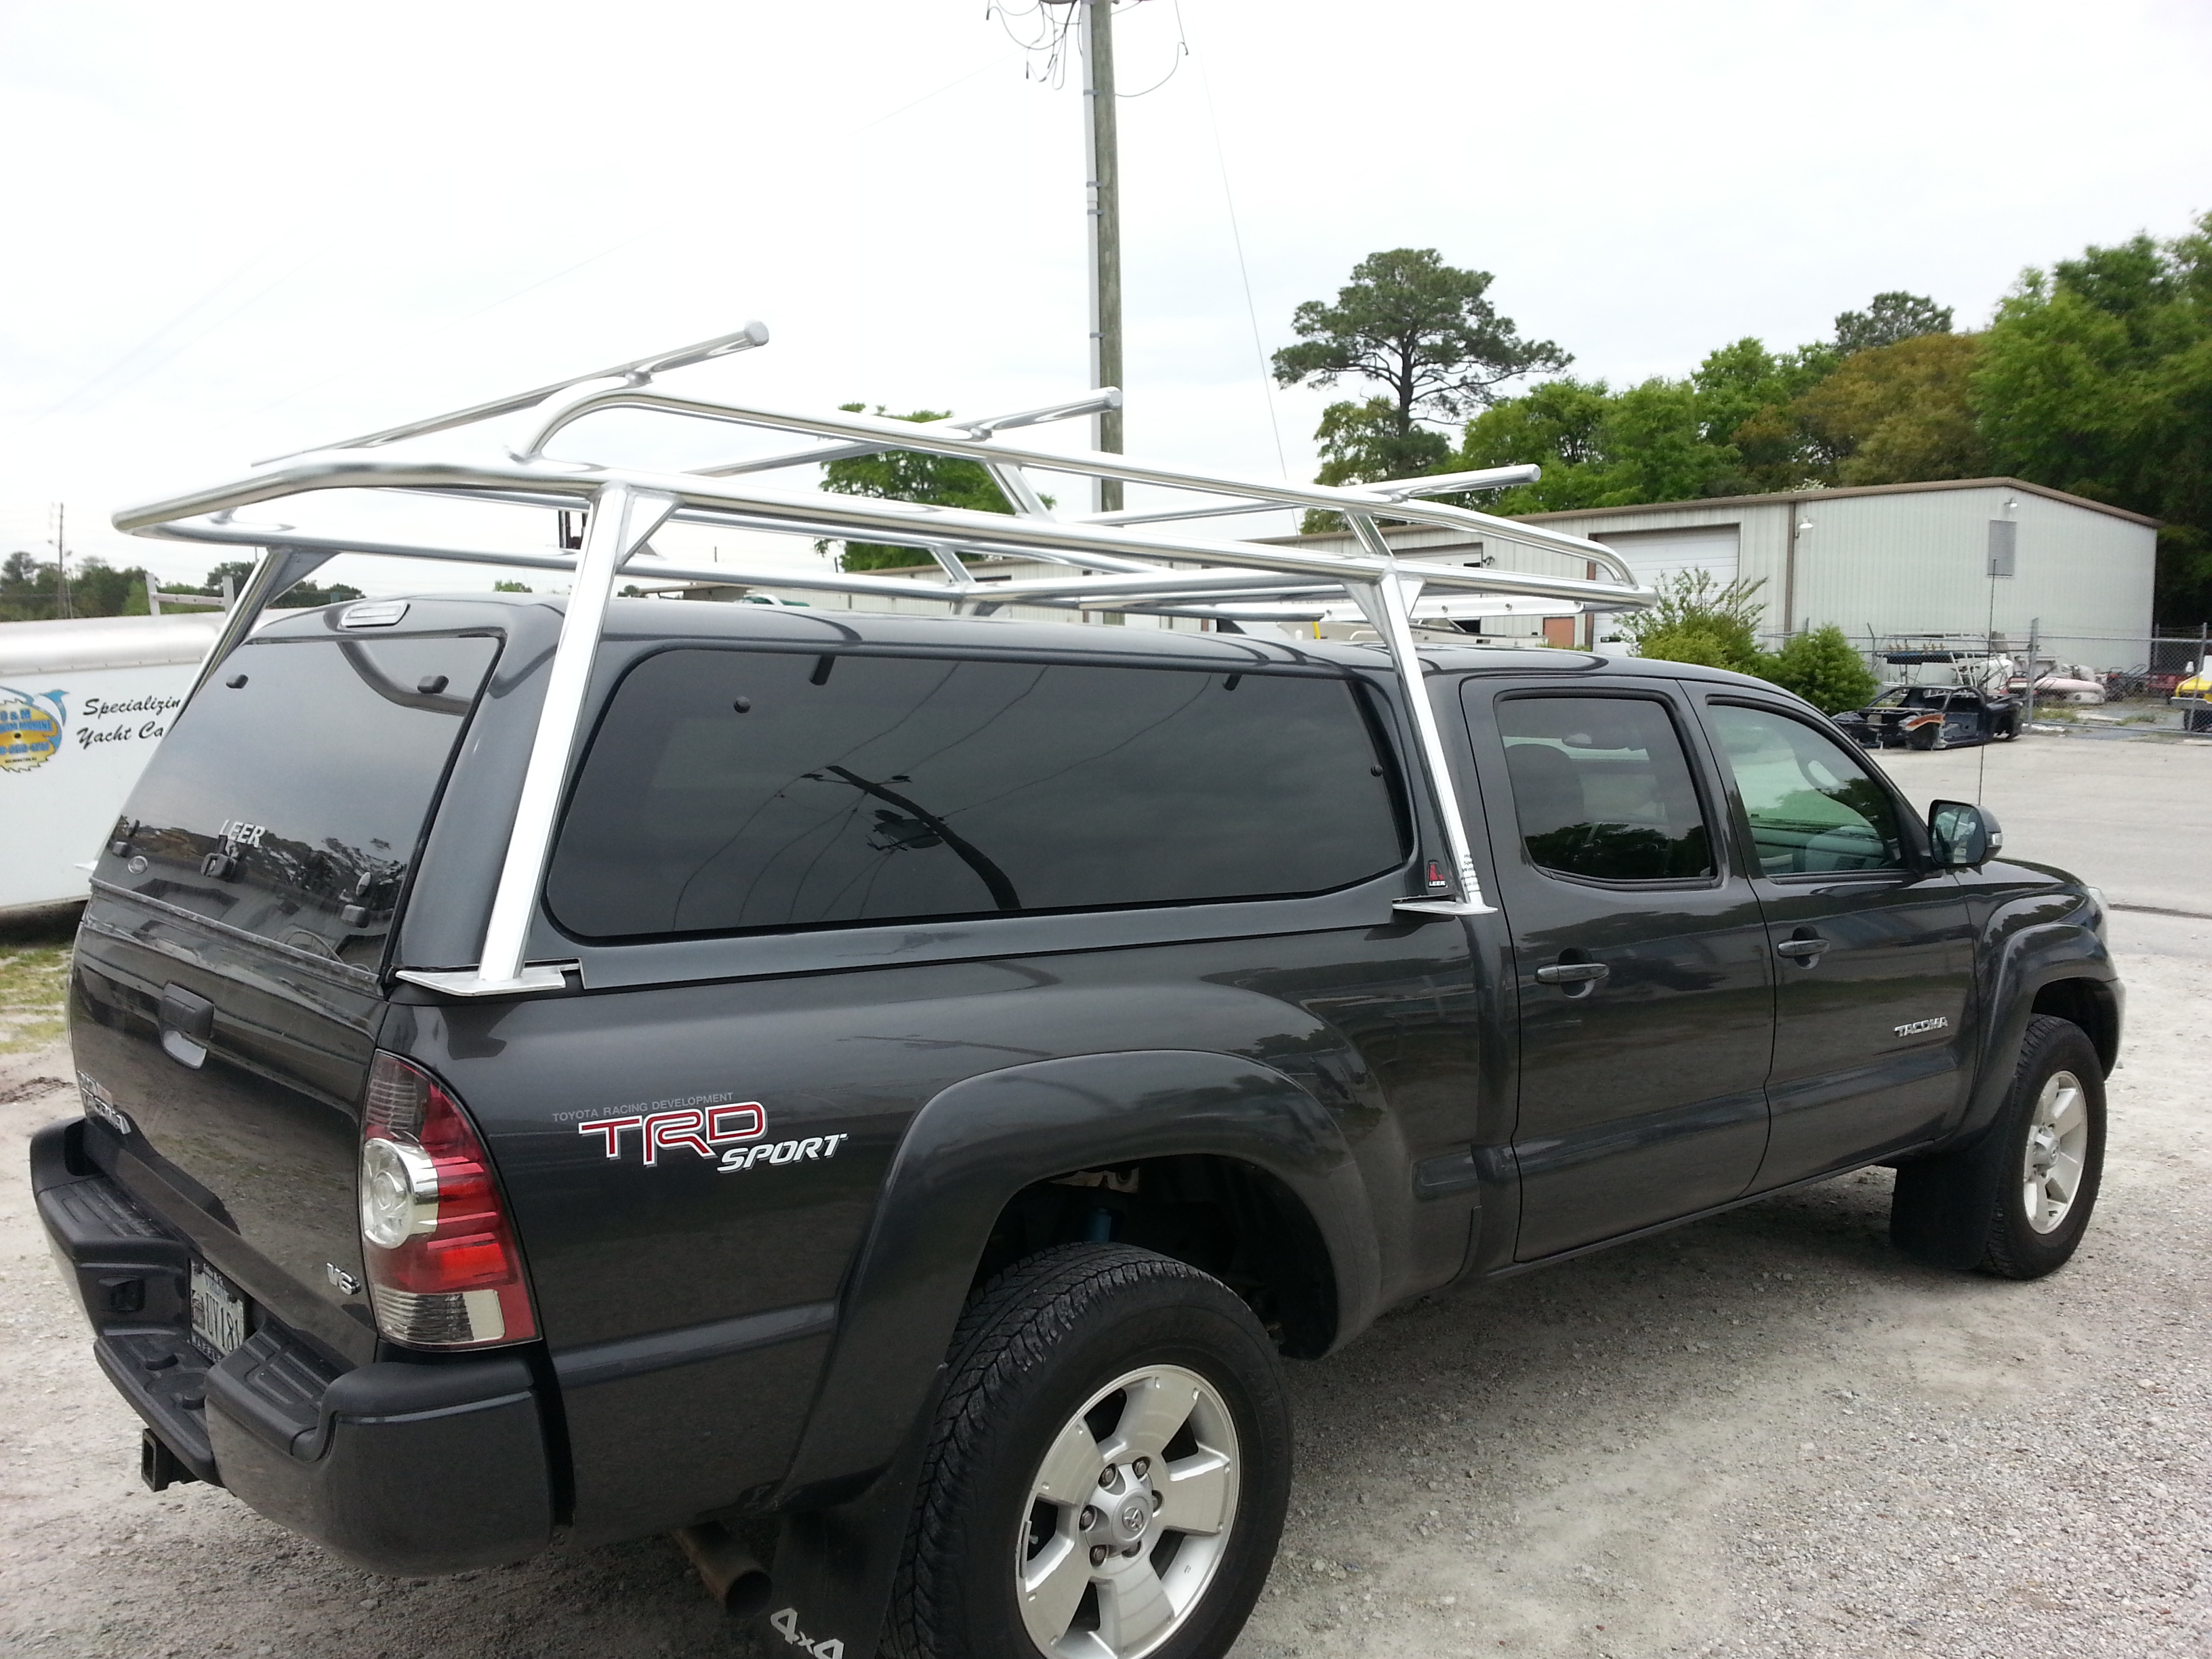 rack p racks truck to rtt bed tacoma low profile